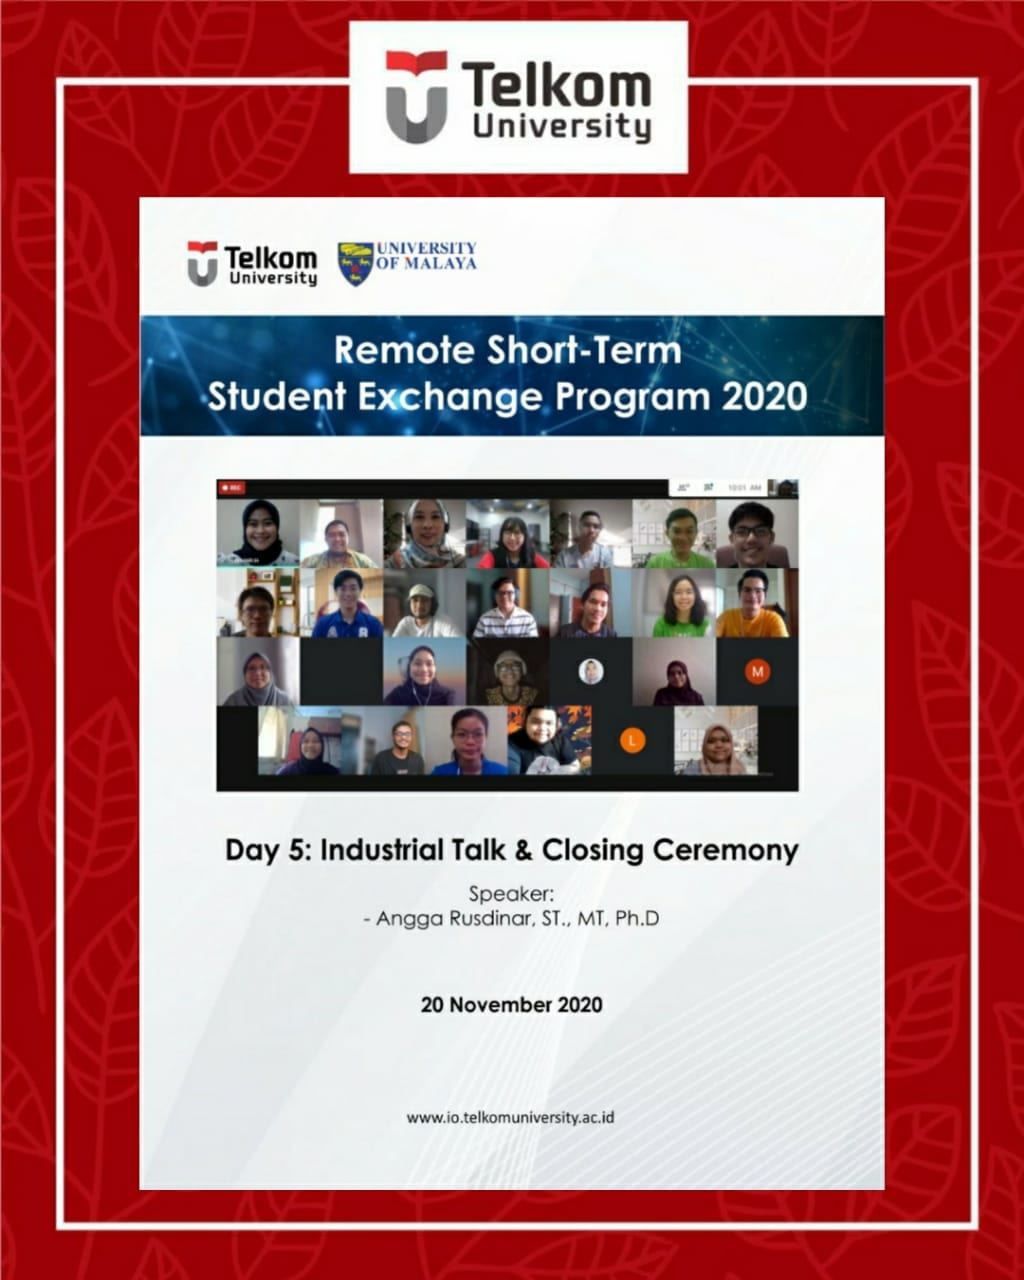 Fun with Engineering Learning in Remote Short-Term Student Exchange Program 2020